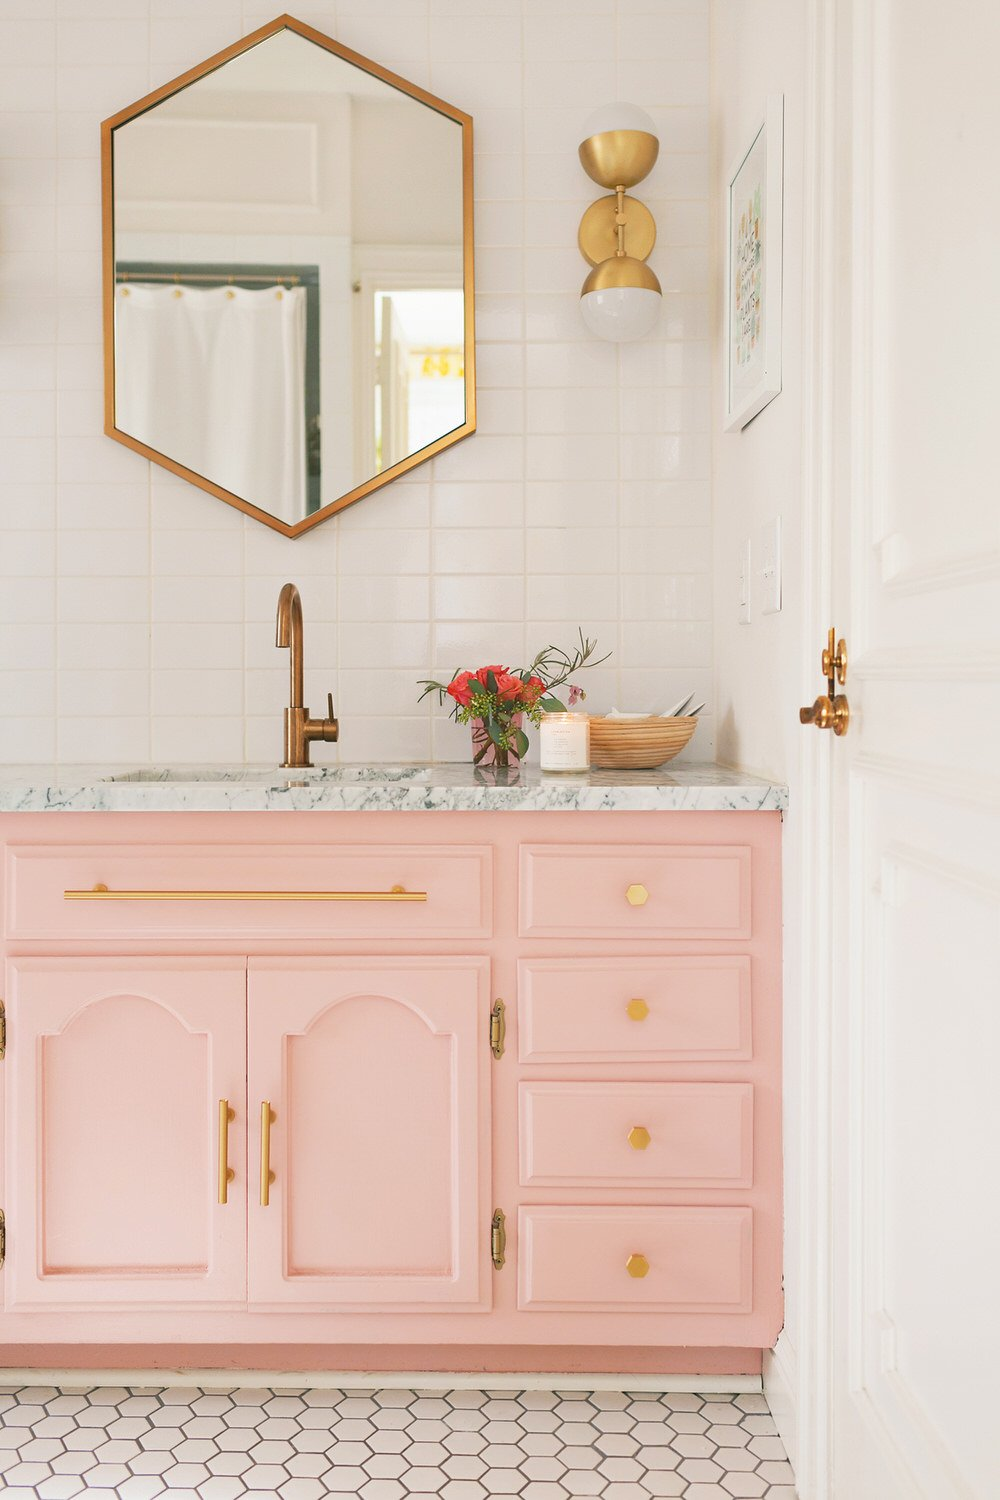 If You Need Fresh Small Bathroom Ideas, Then Try This Tip From U0027Liz Marieu0027.  You Can Use Non Traditional Wall Art In A Bathroom. It Just Adds To The  Charm!